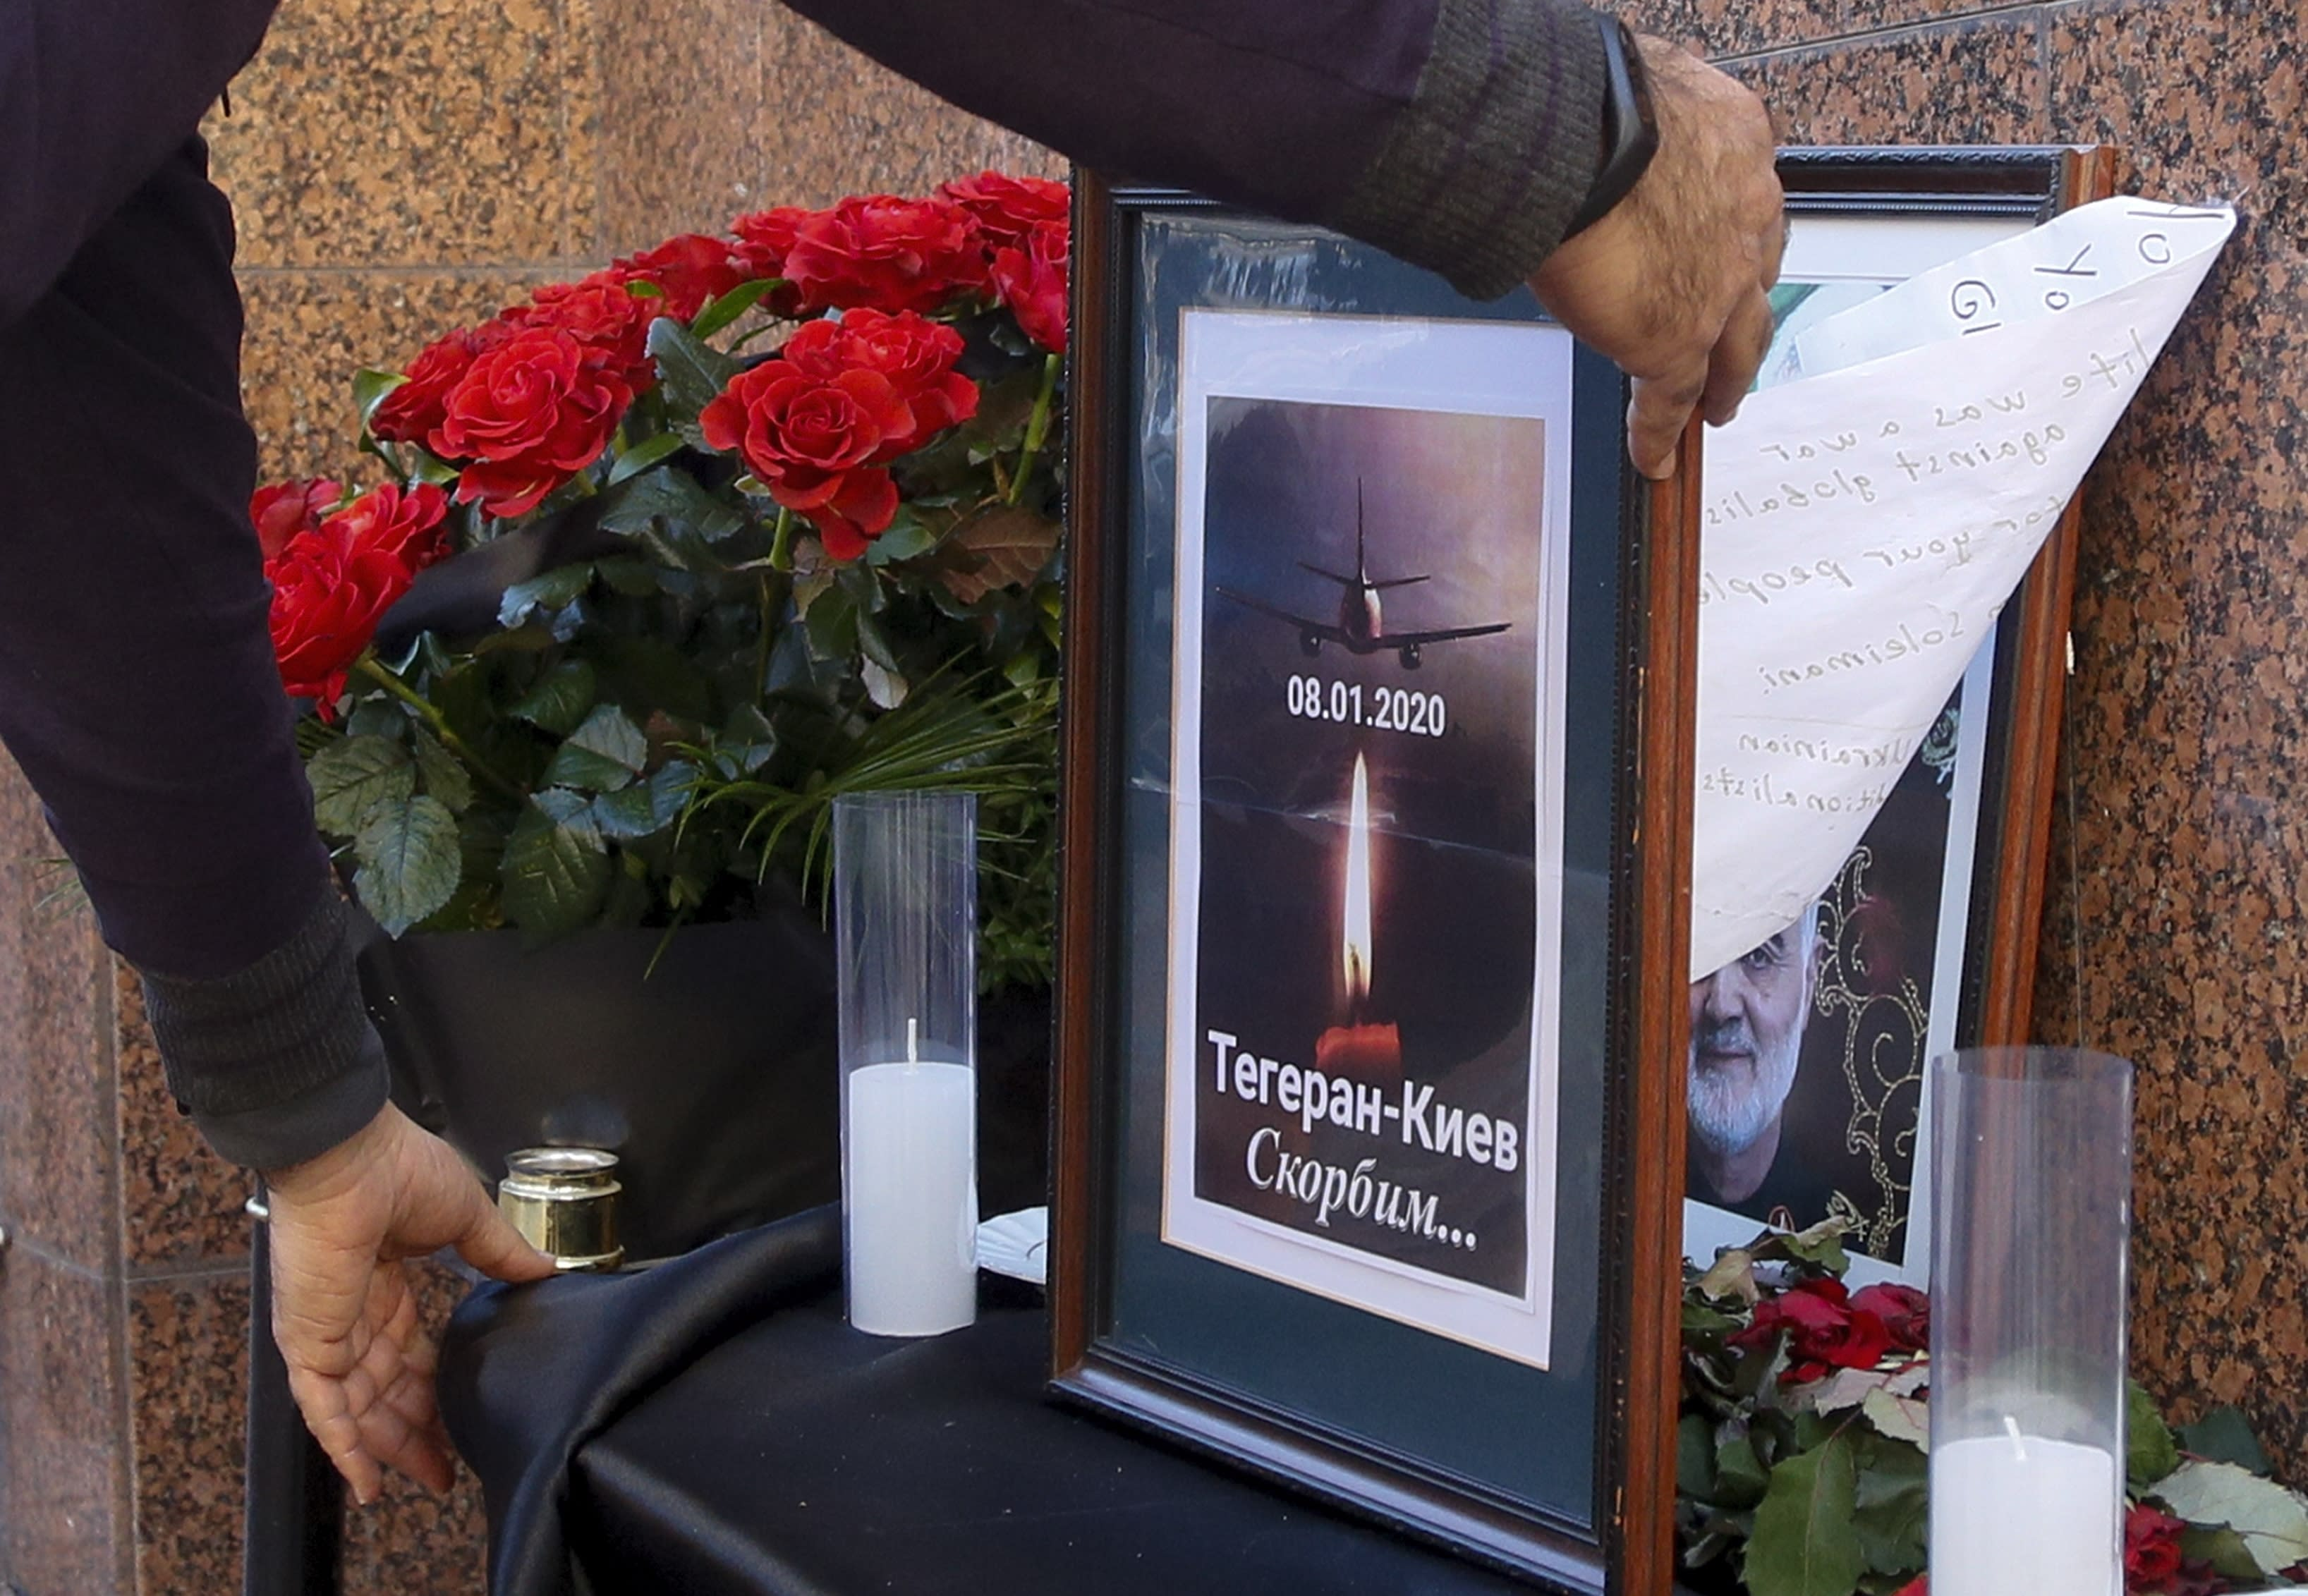 "A man places a memorial poster showing a Ukrainian 737-800 plane that crashed on the outskirts of Tehran, Iran, and and a candle, the words reading ""Tehran - Kyiv, we're mourning"" outside the Iranian Embassy in Kyiv, Ukraine, Wednesday, Jan. 8, 2020. A Ukrainian airplane carrying 176 people crashed on Wednesday shortly after takeoff from Tehran's main airport, killing all onboard, Iranian state TV and officials in Ukraine said. The portrait of Iranian Revolutionary Guard Gen. Qassem Soleimani killed by U.S. airstrike in Iraq is seen behind. (AP Photo/Efrem Lukatsky)"